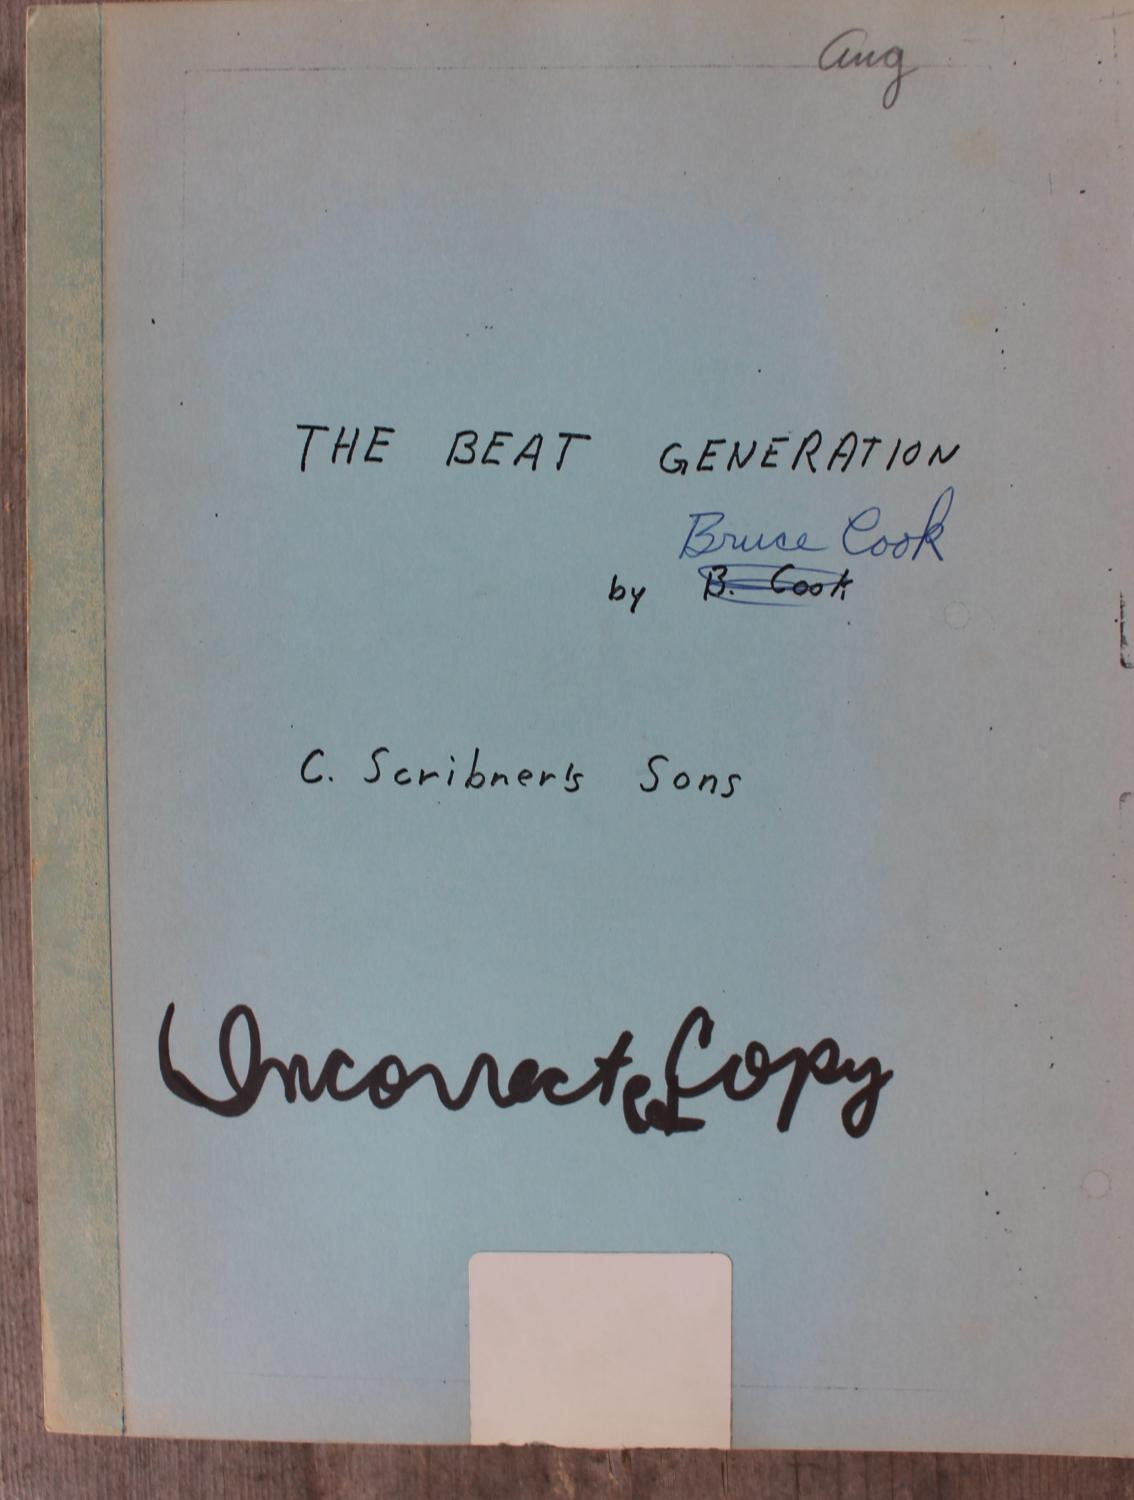 The Beat Generation Bruce Cook